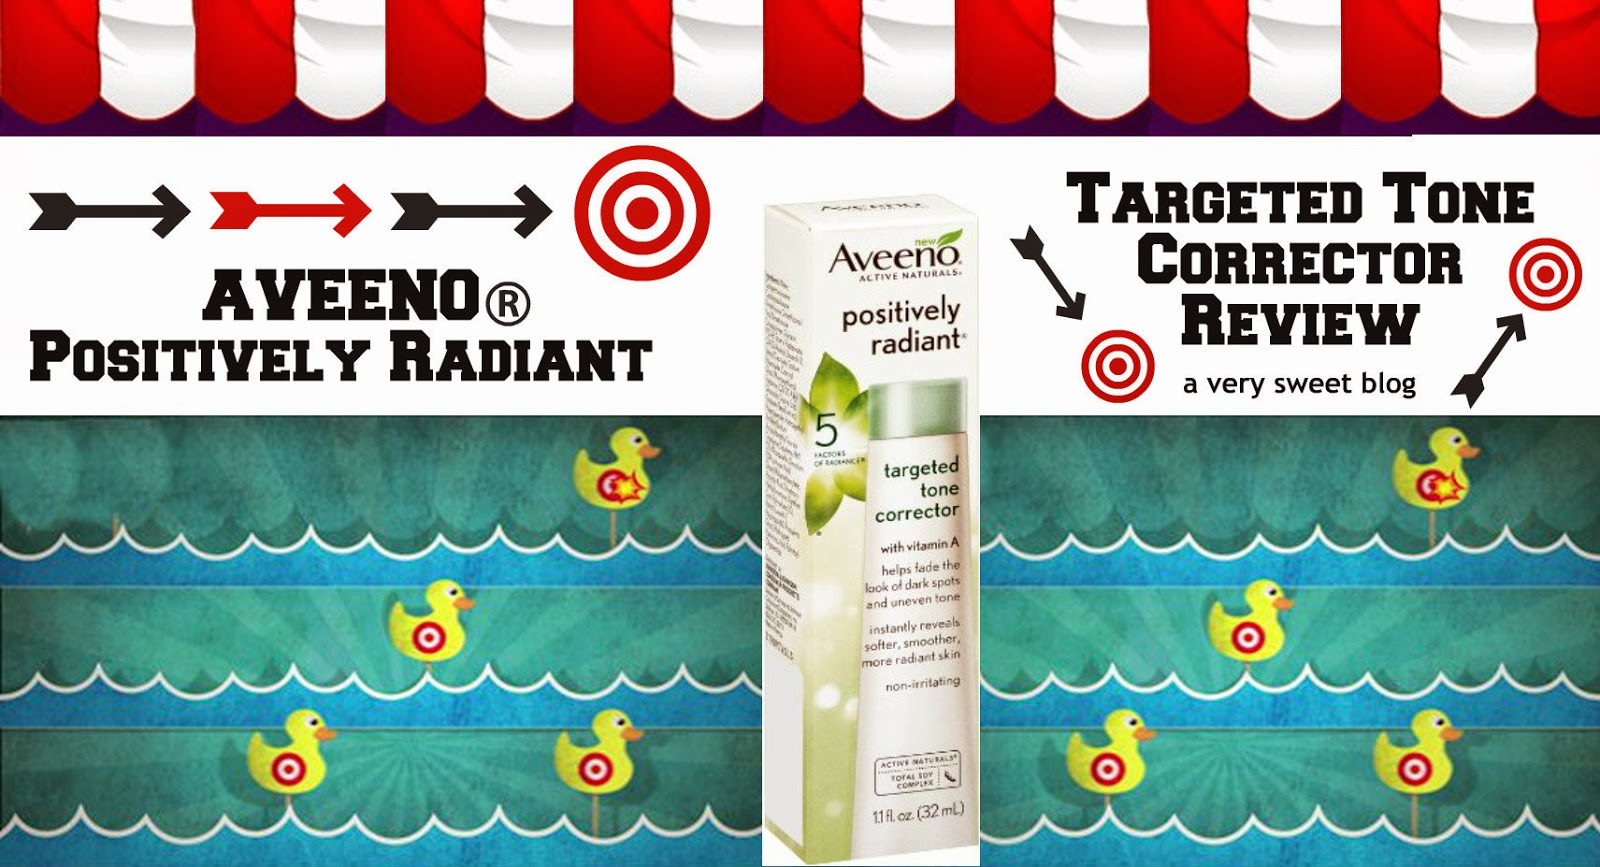 Aveeno Products For Dark Spots | Short News Poster